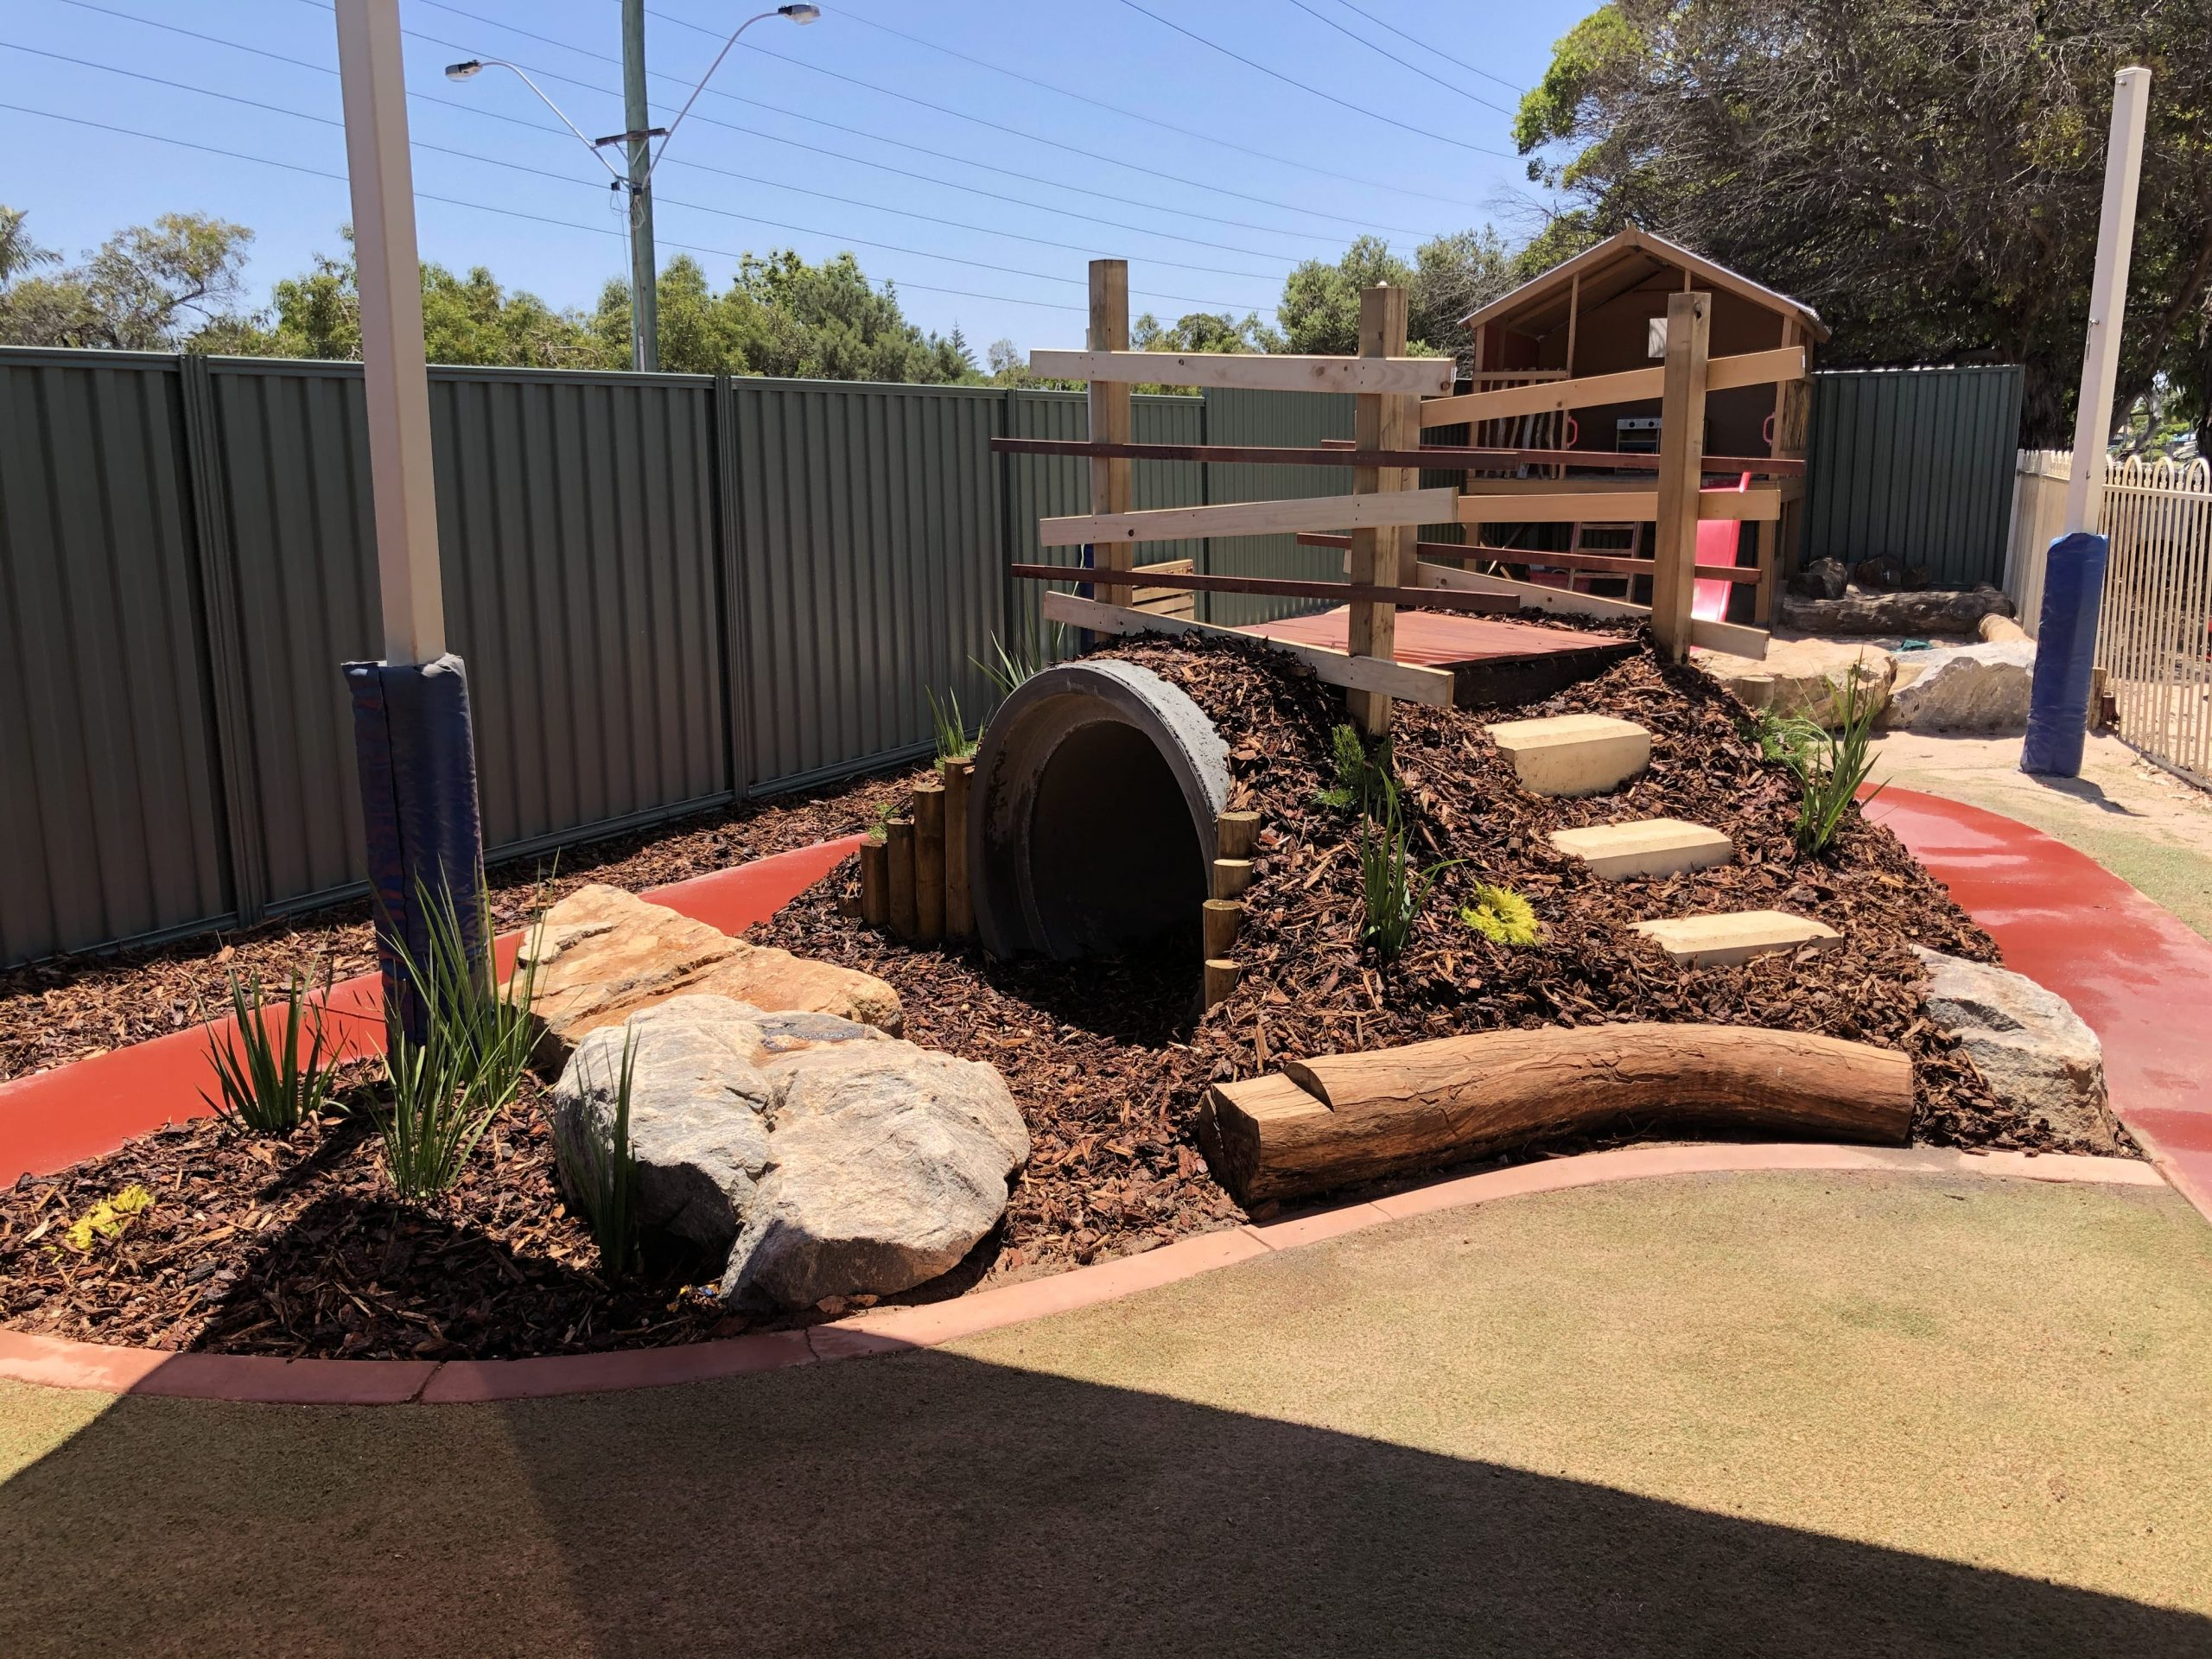 Playful garden landscaping for a daycare.